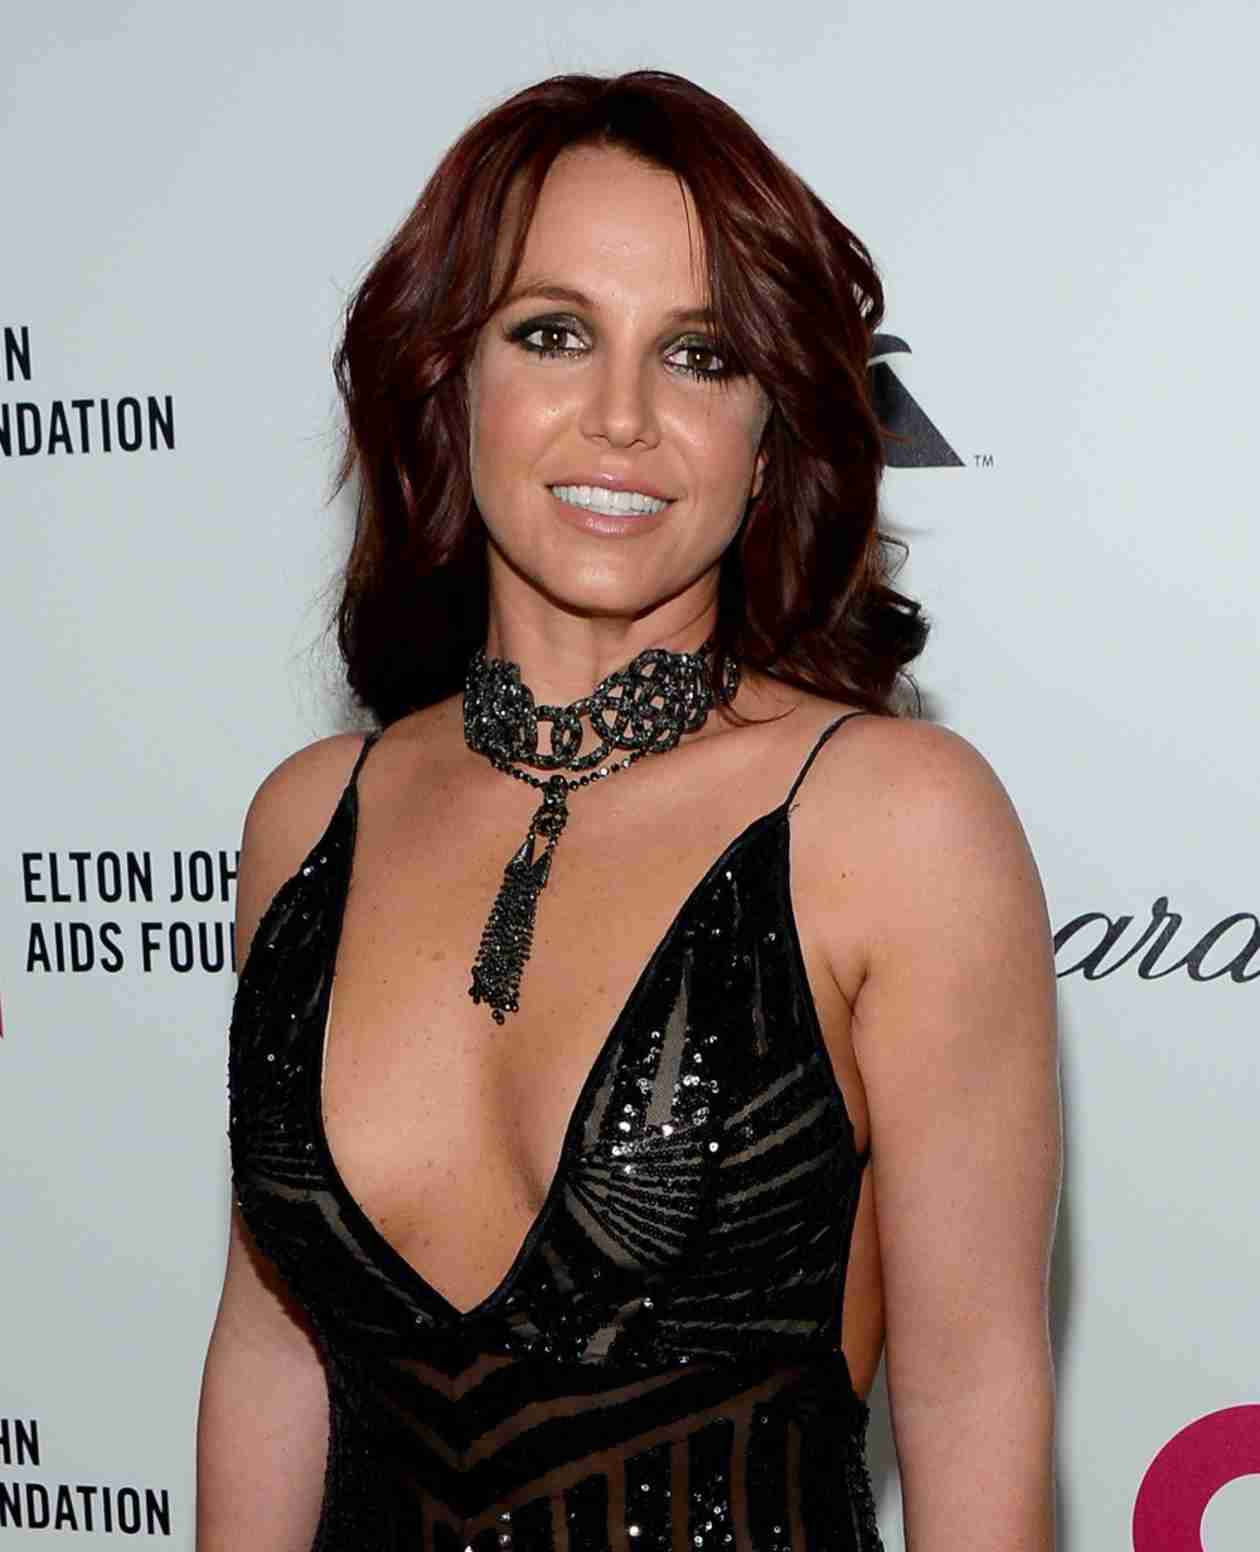 Britney Spears Reveals That David Lucado Cheated On Her At Her Vegas Show